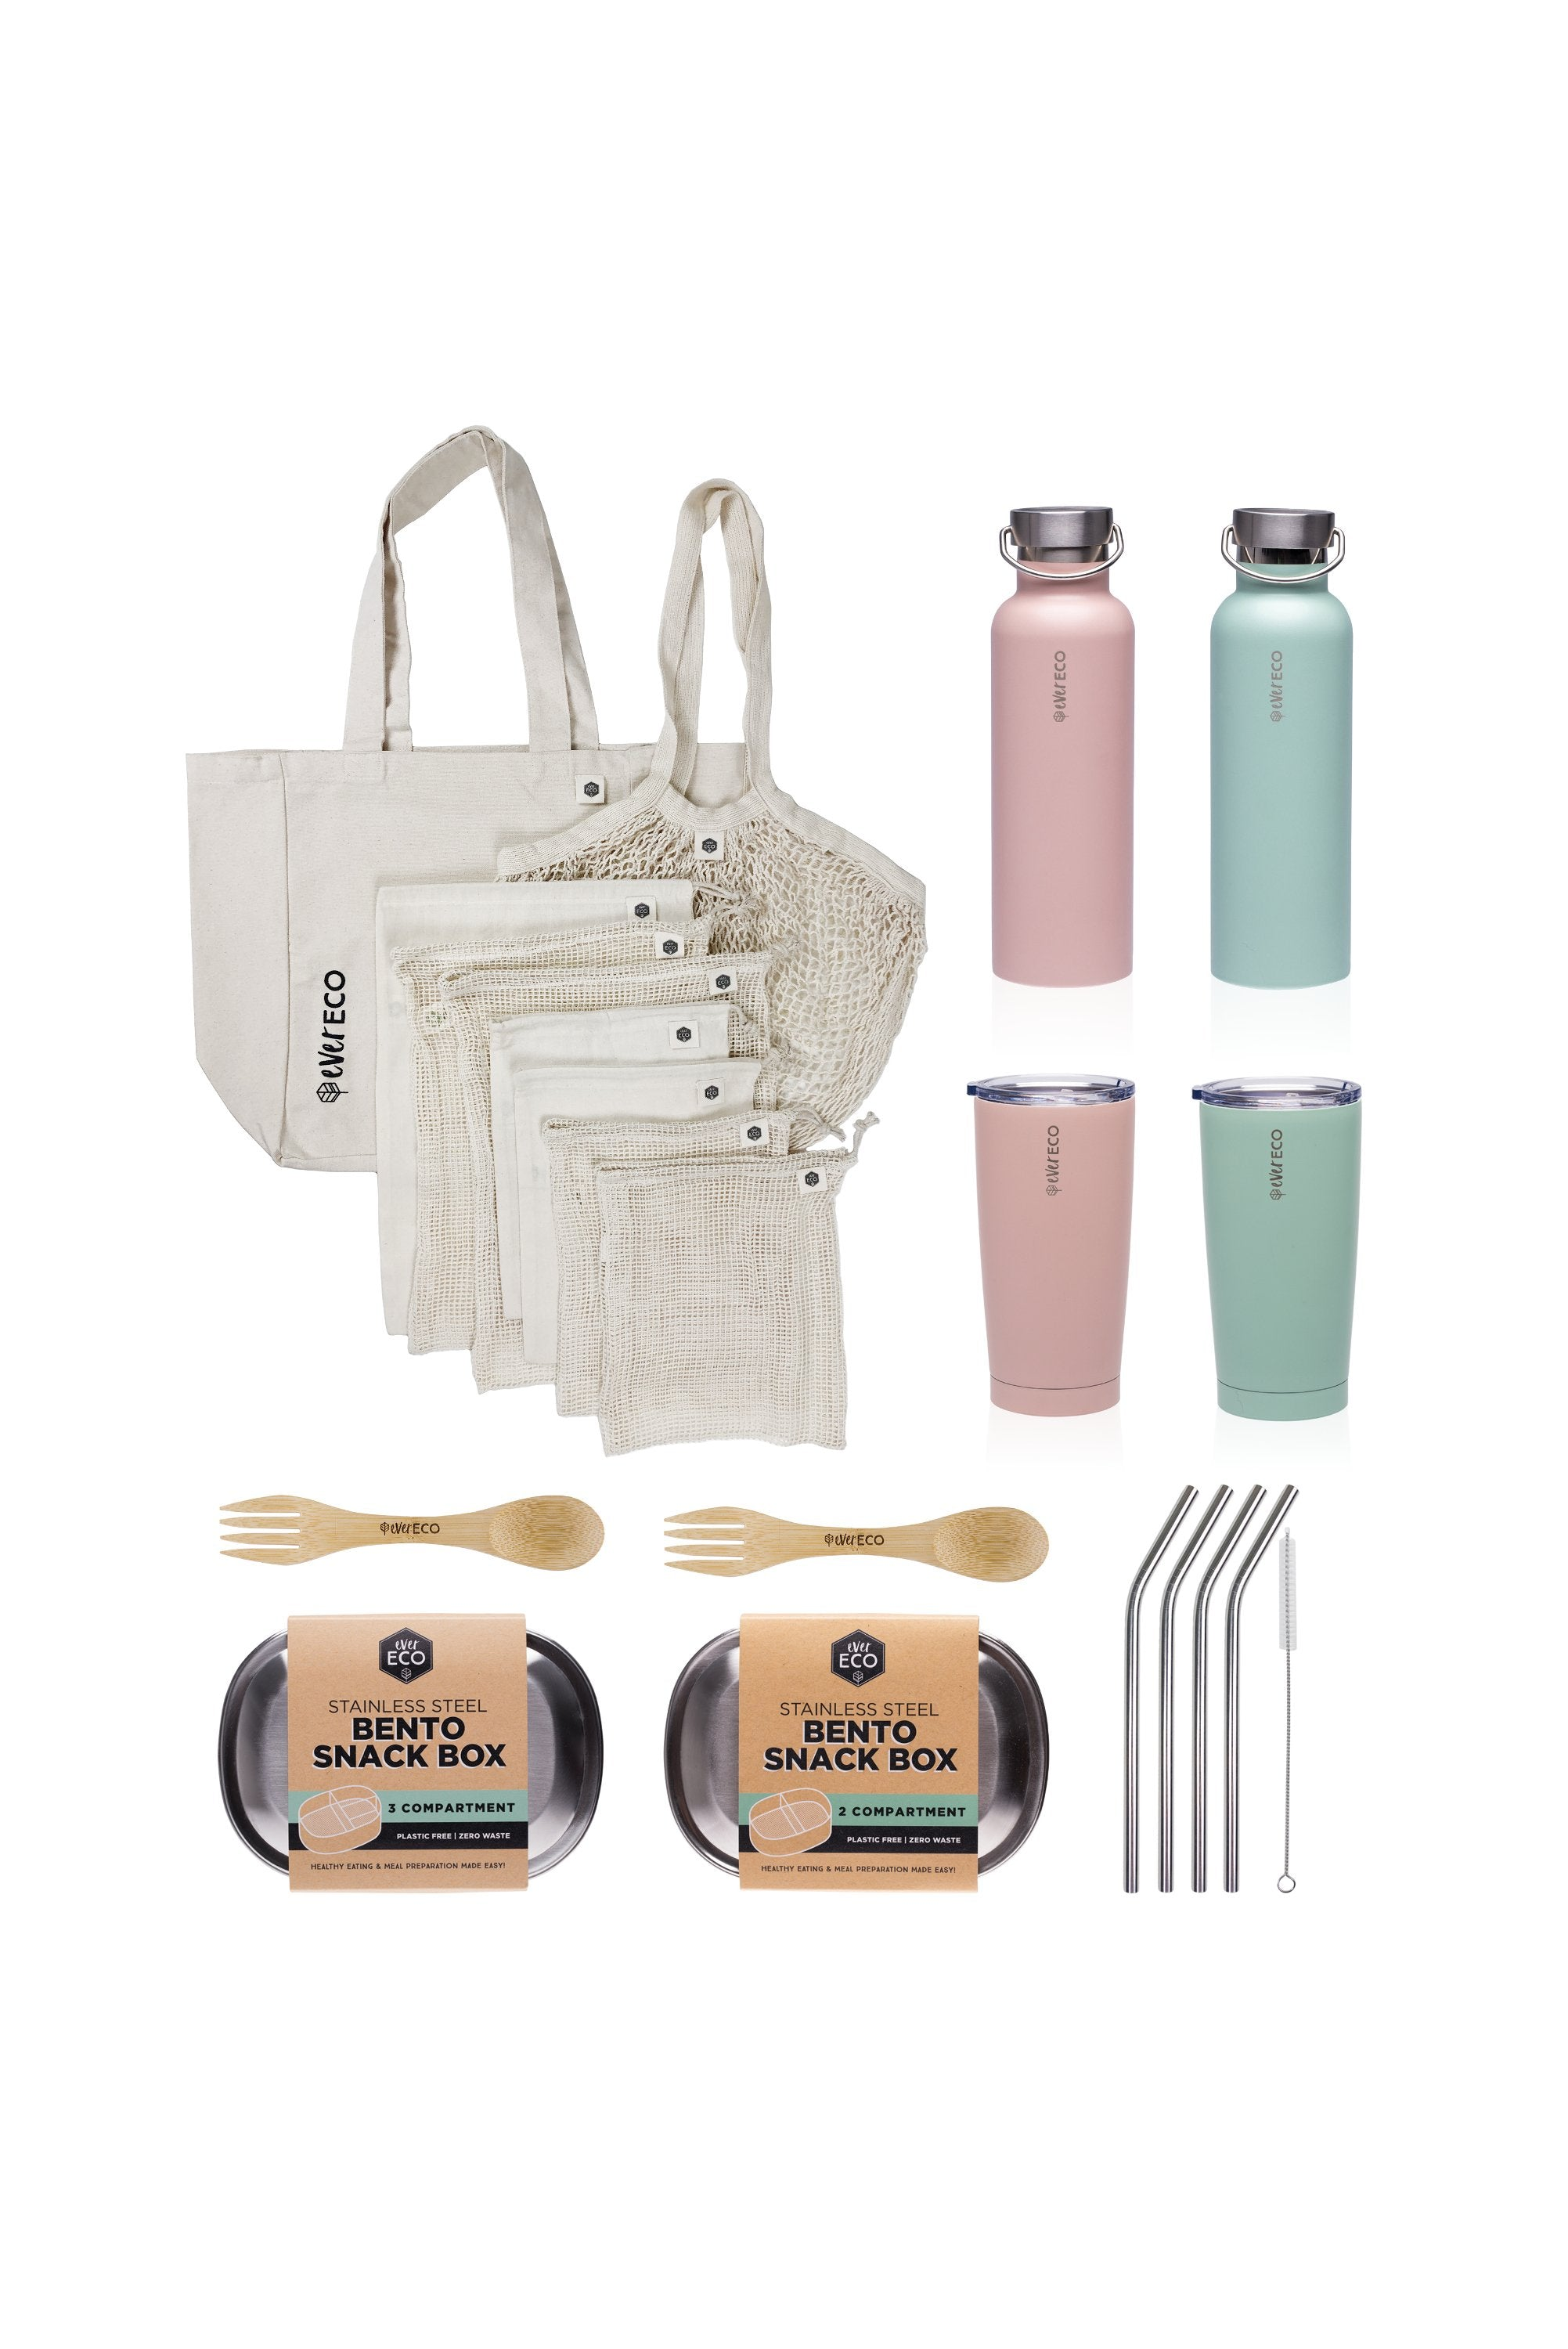 Ever Eco Ultimate On the Go Bundle - Save $60